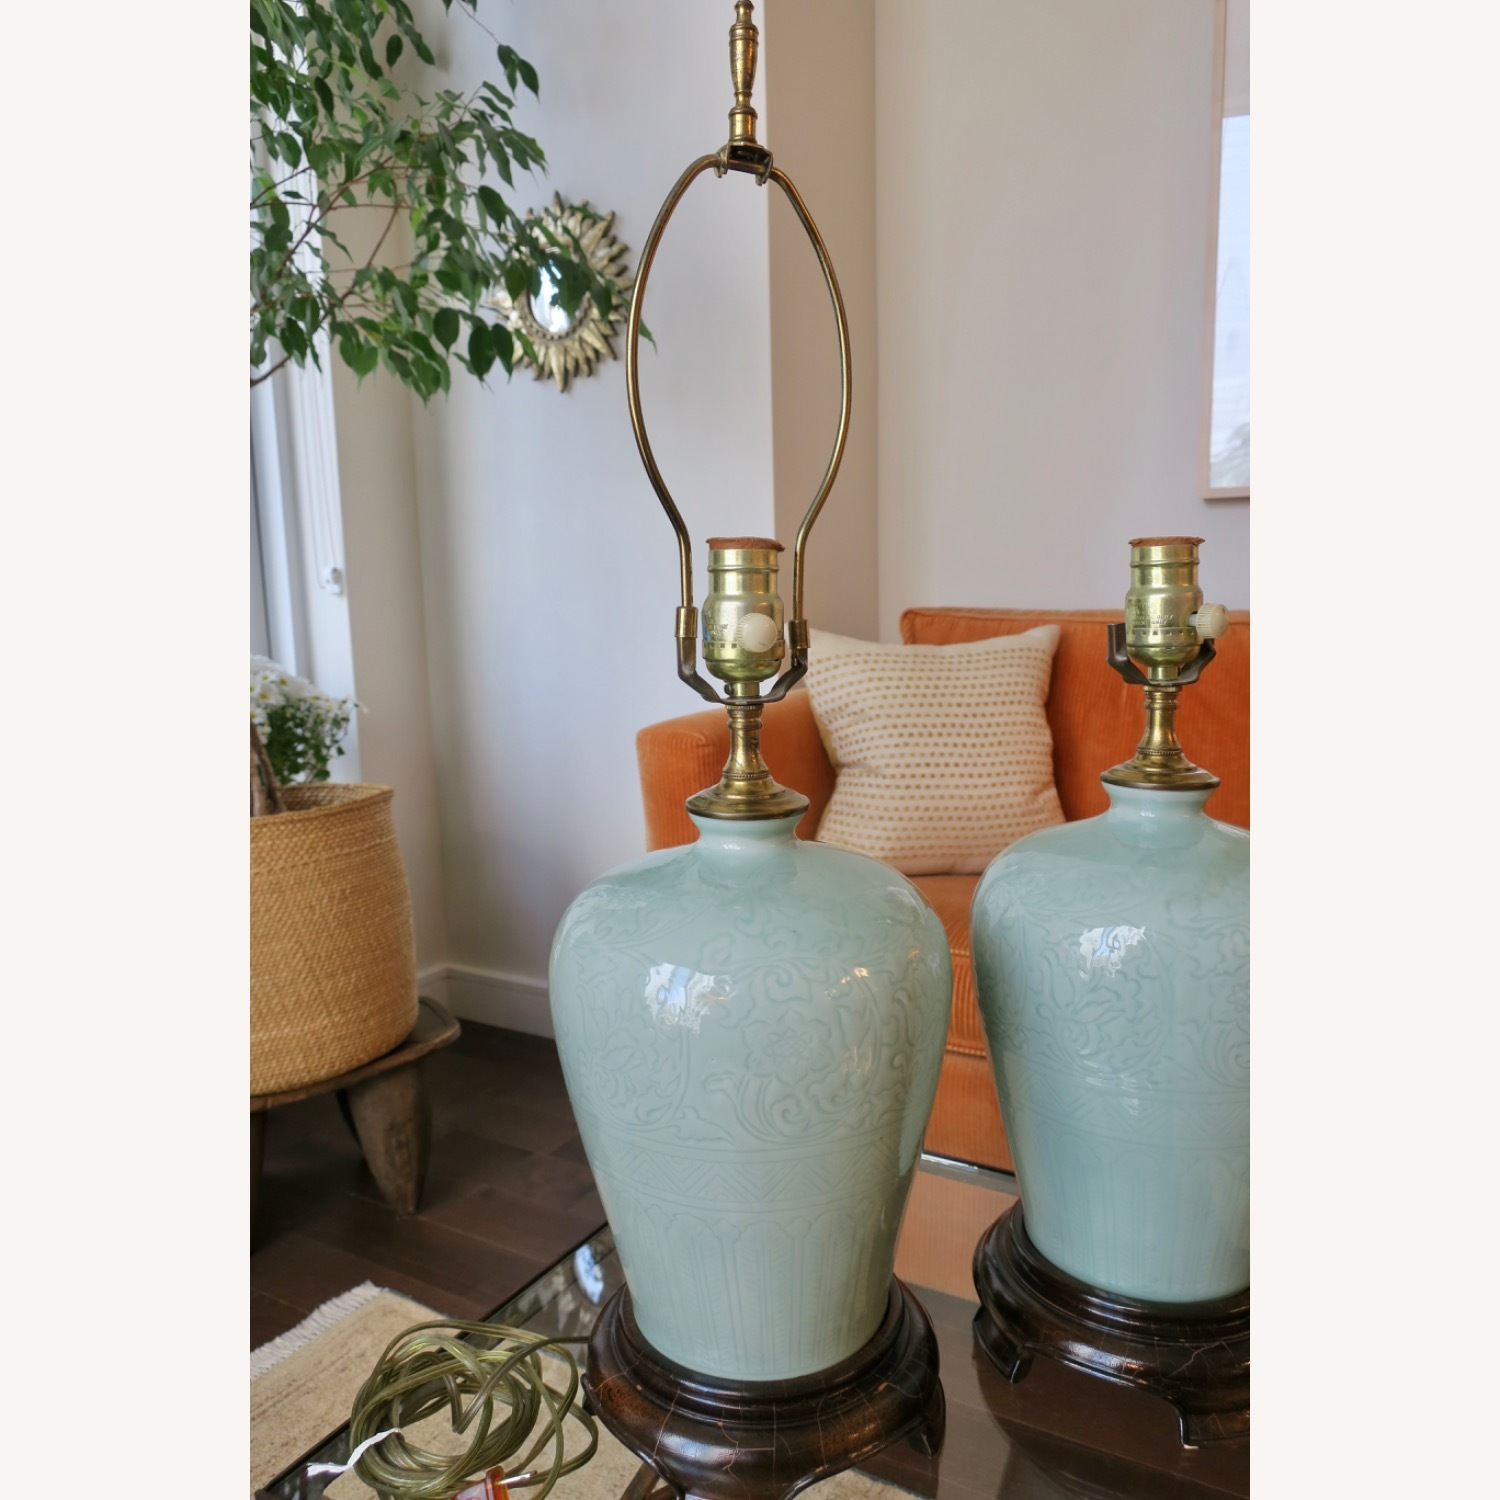 Celadon Ceramic Asian Table Lamps - image-7